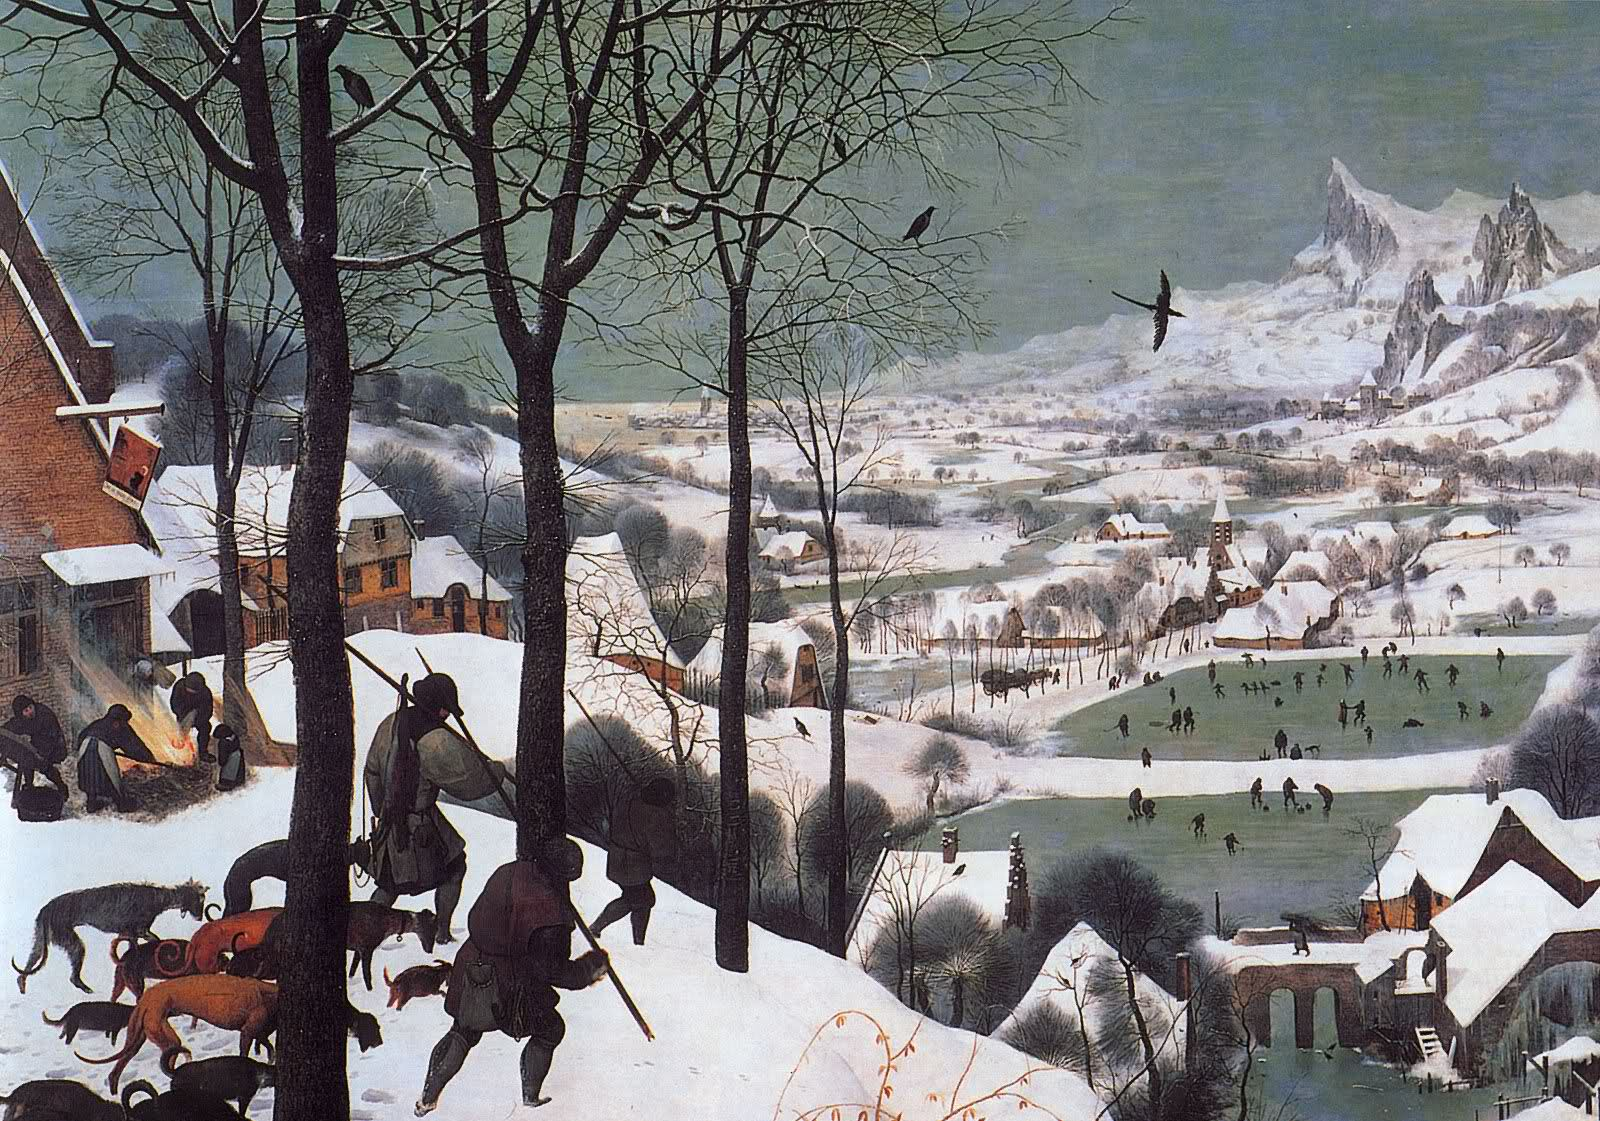 Bruegel, Pieter the Elder- Hunters in the Snow (Winter) 1565